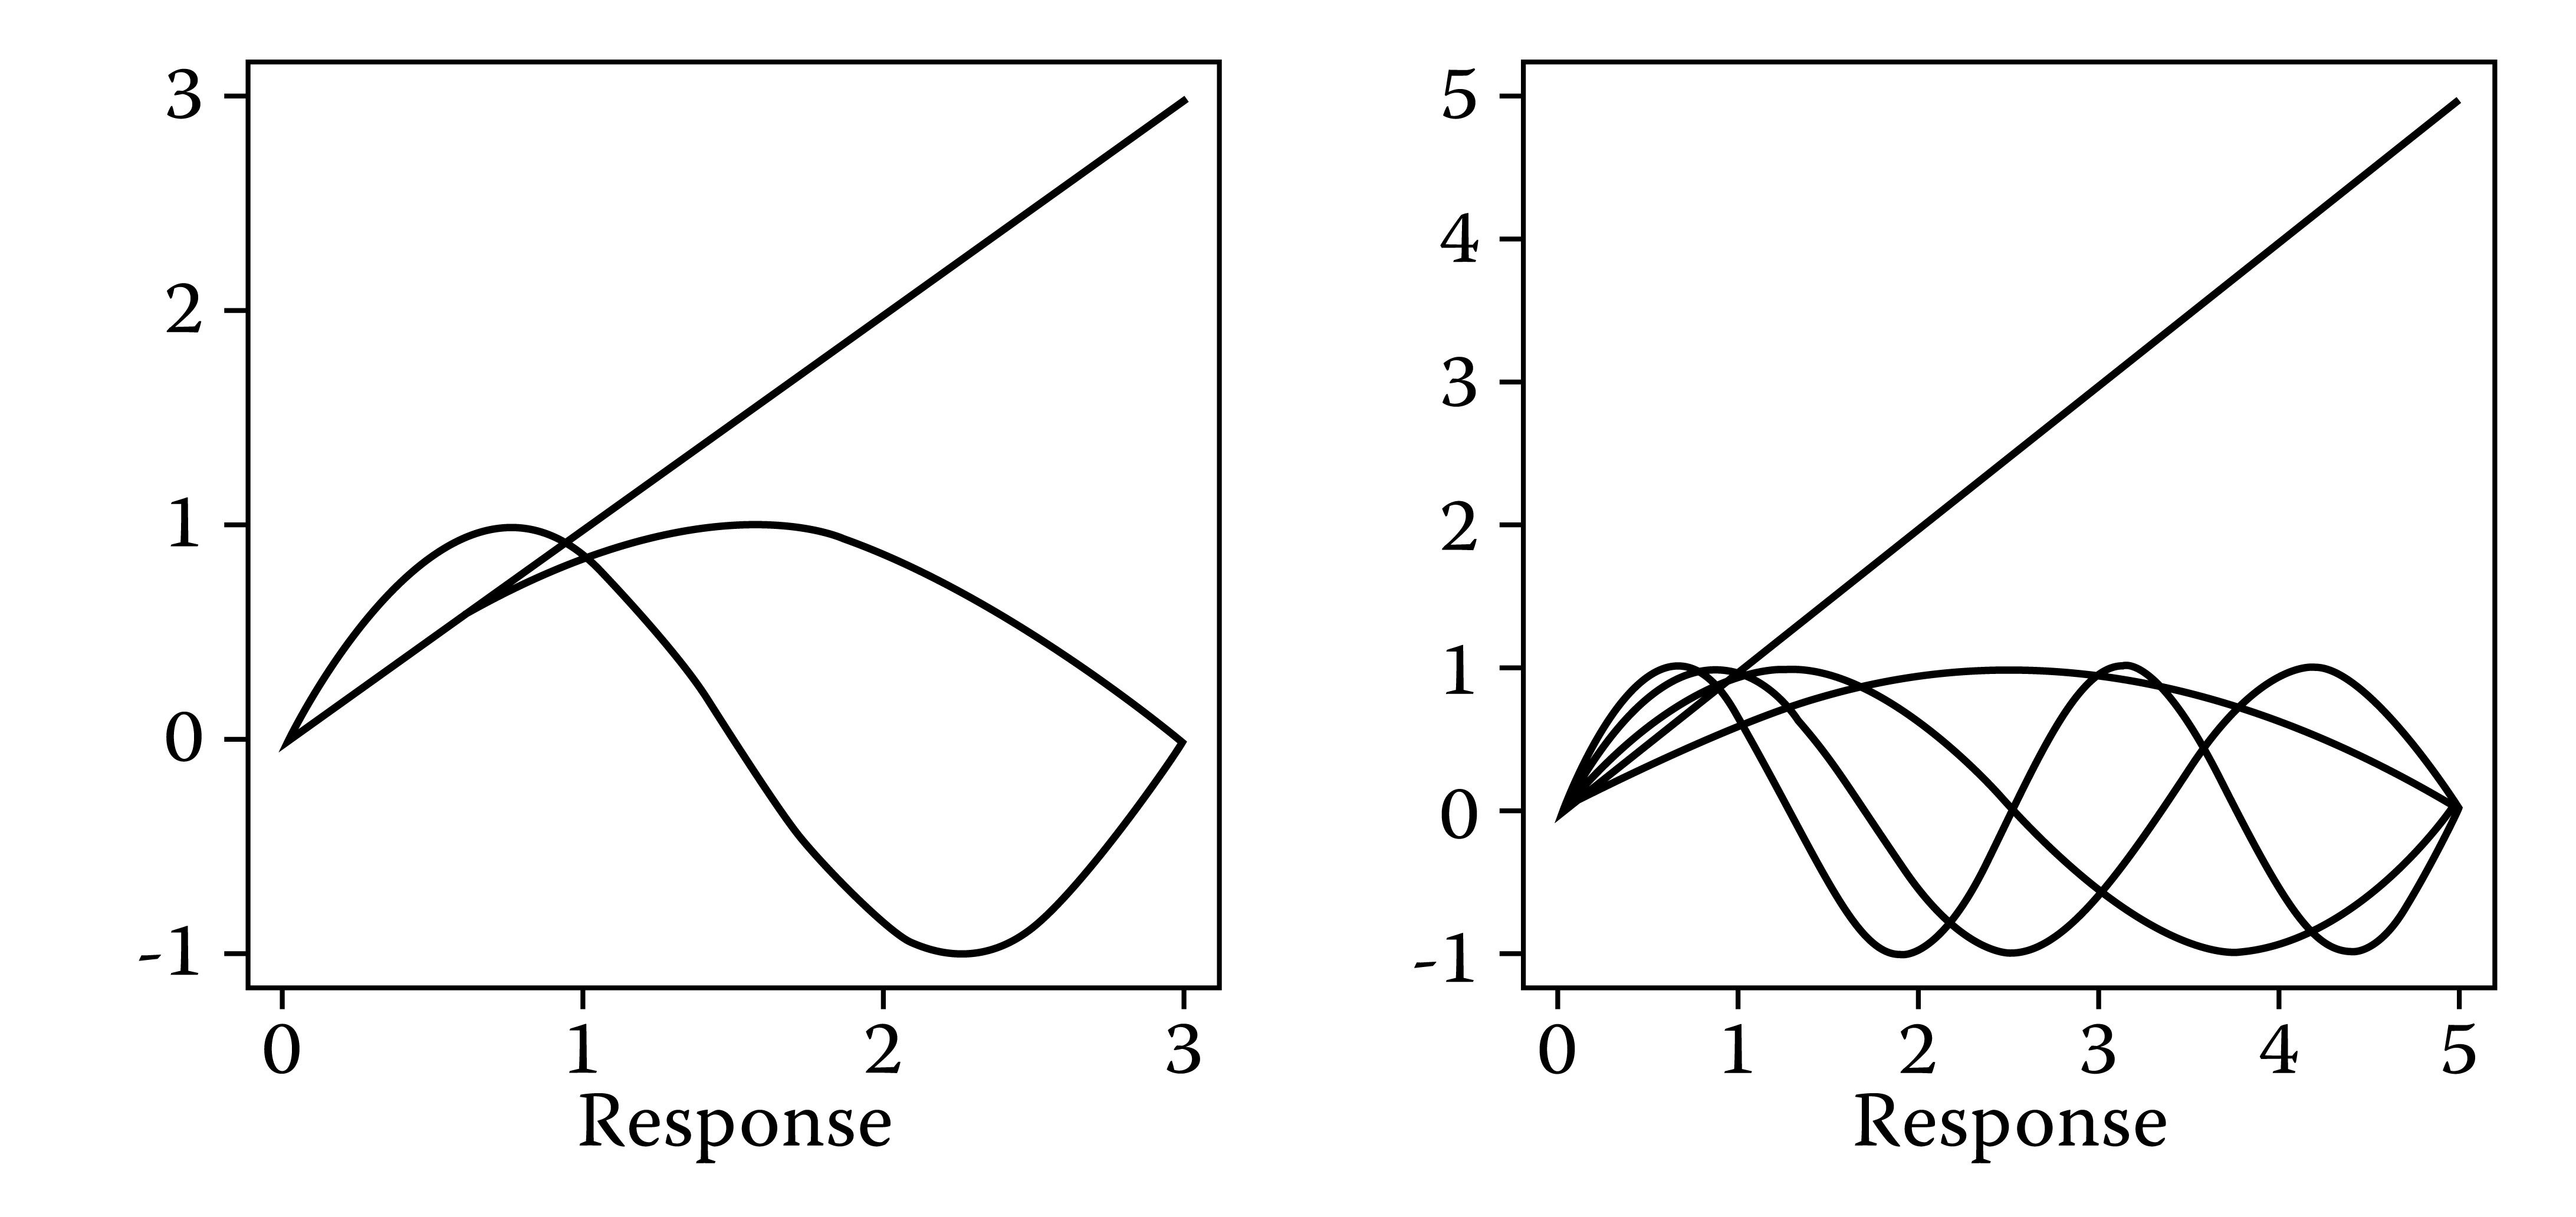 Graphs of the linear and Fourier basis functions for the new nominal model parameterization, for four categories (left panel) and six categories (right panel); the values of